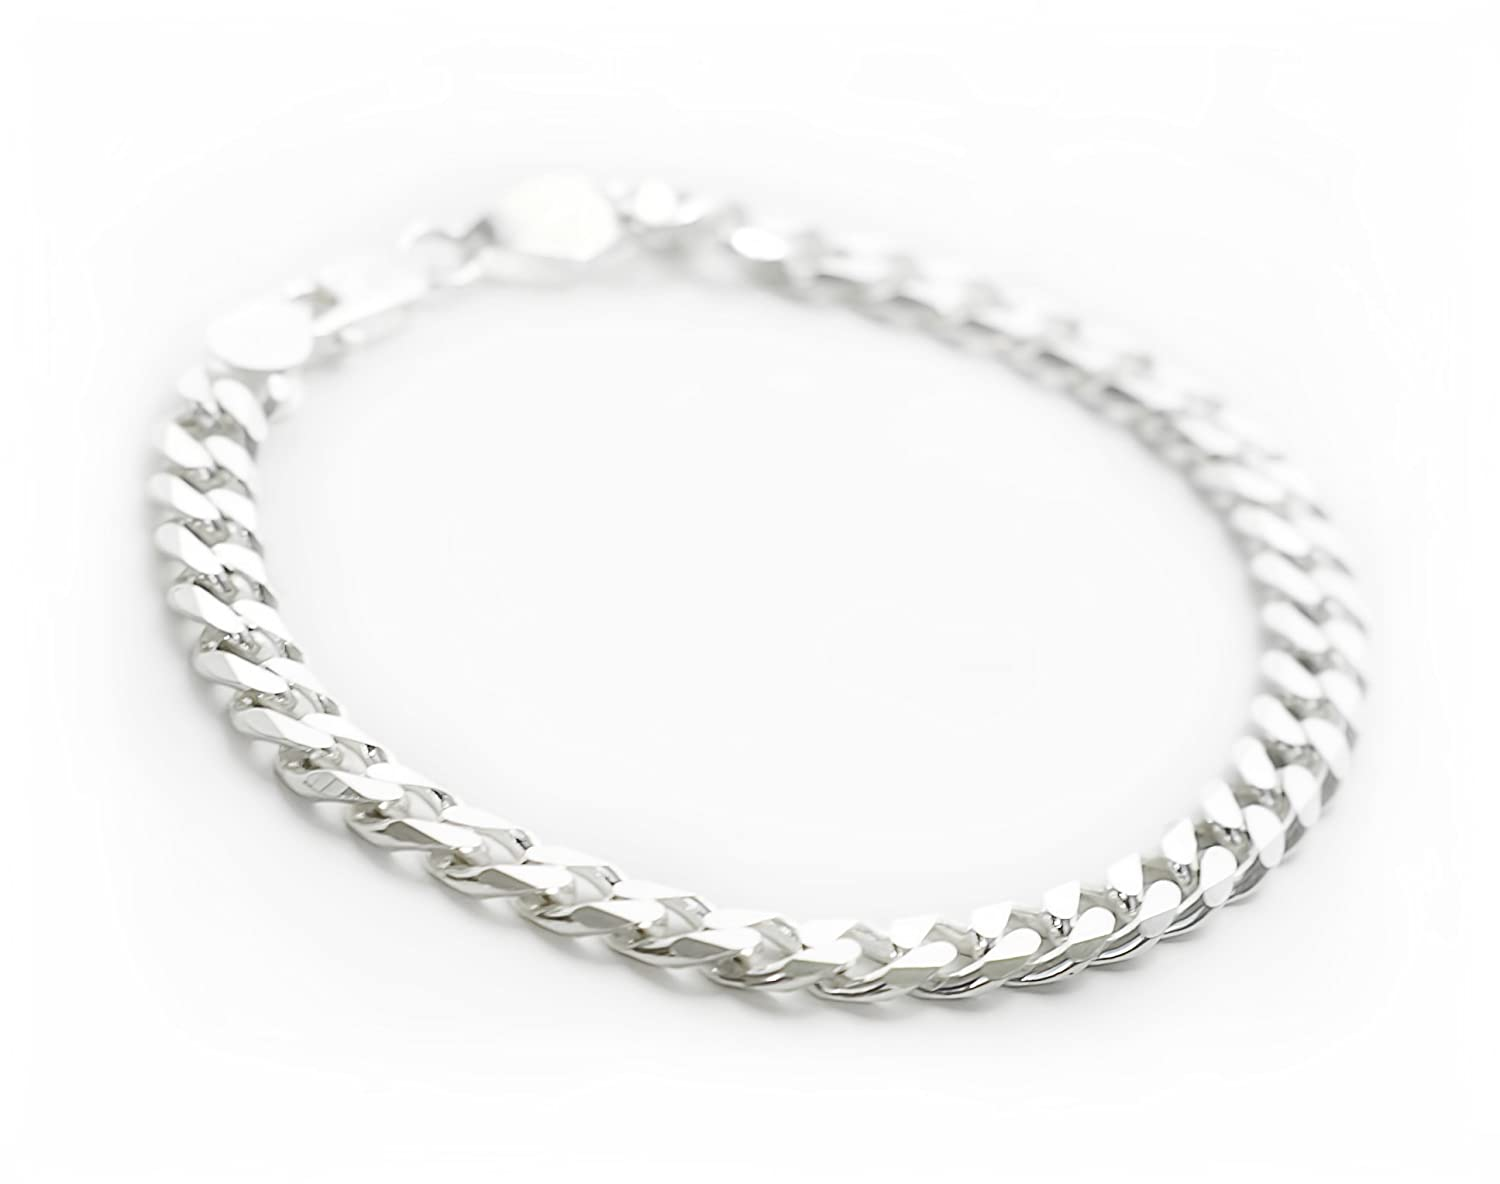 Silverwala Silver Sterling 92.5 Silver Bracelet For Men: Amazon.in ...